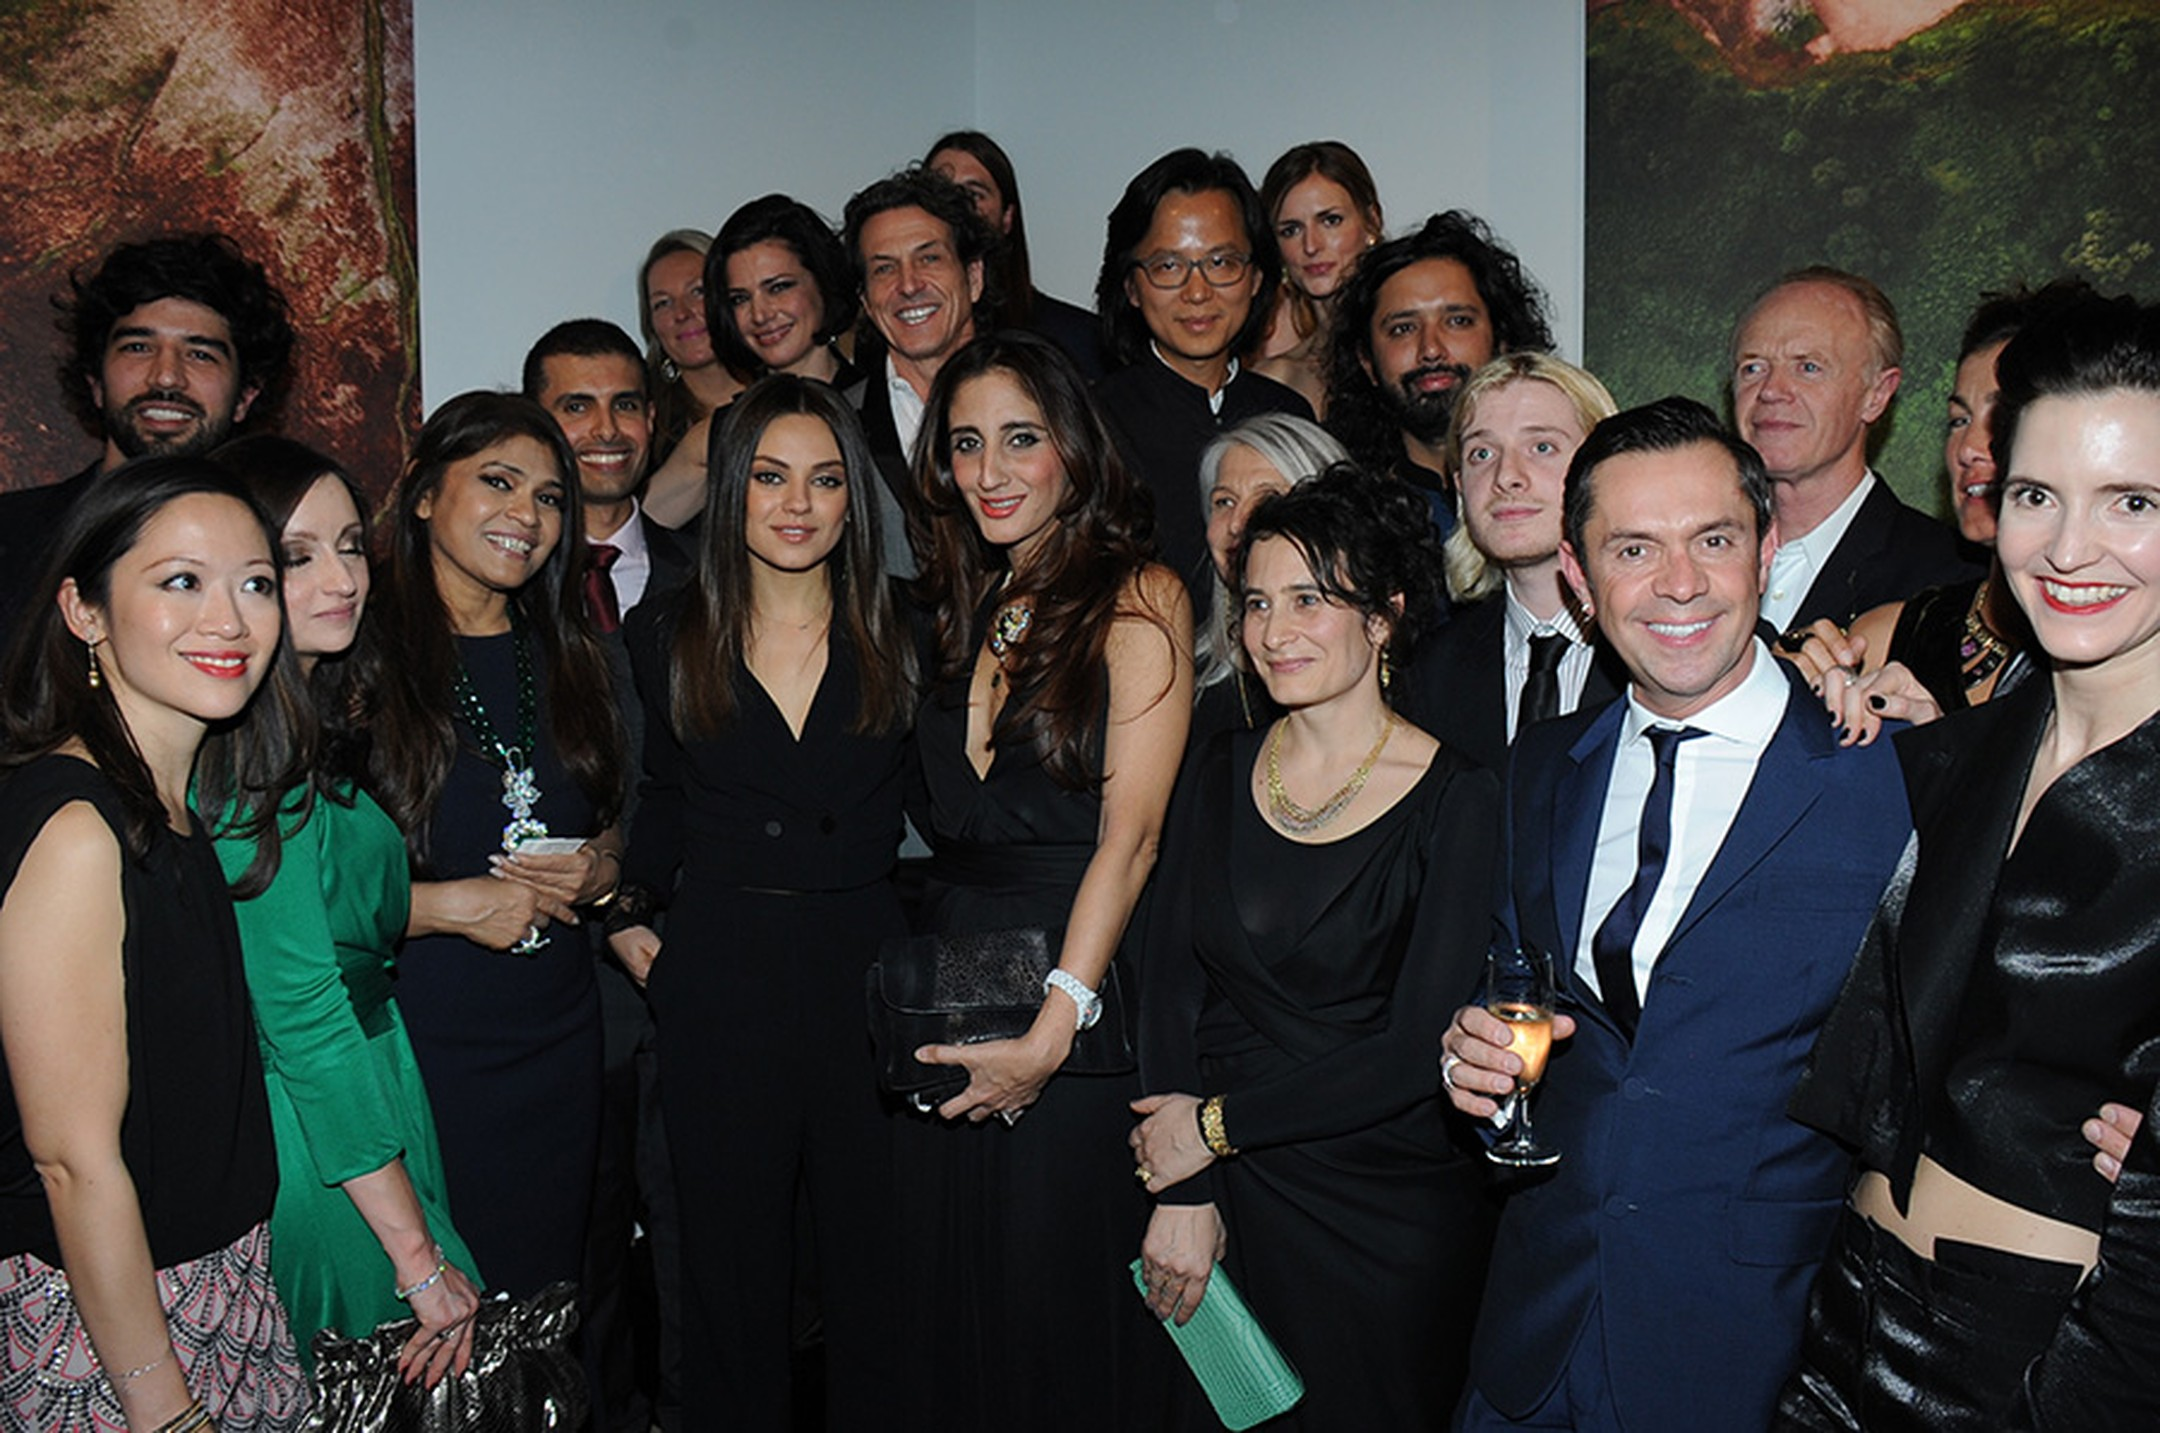 Gemfields-London-Launch-with-Mila-Kunis-and-International-Jewellery-Designers-March-2013.jpg